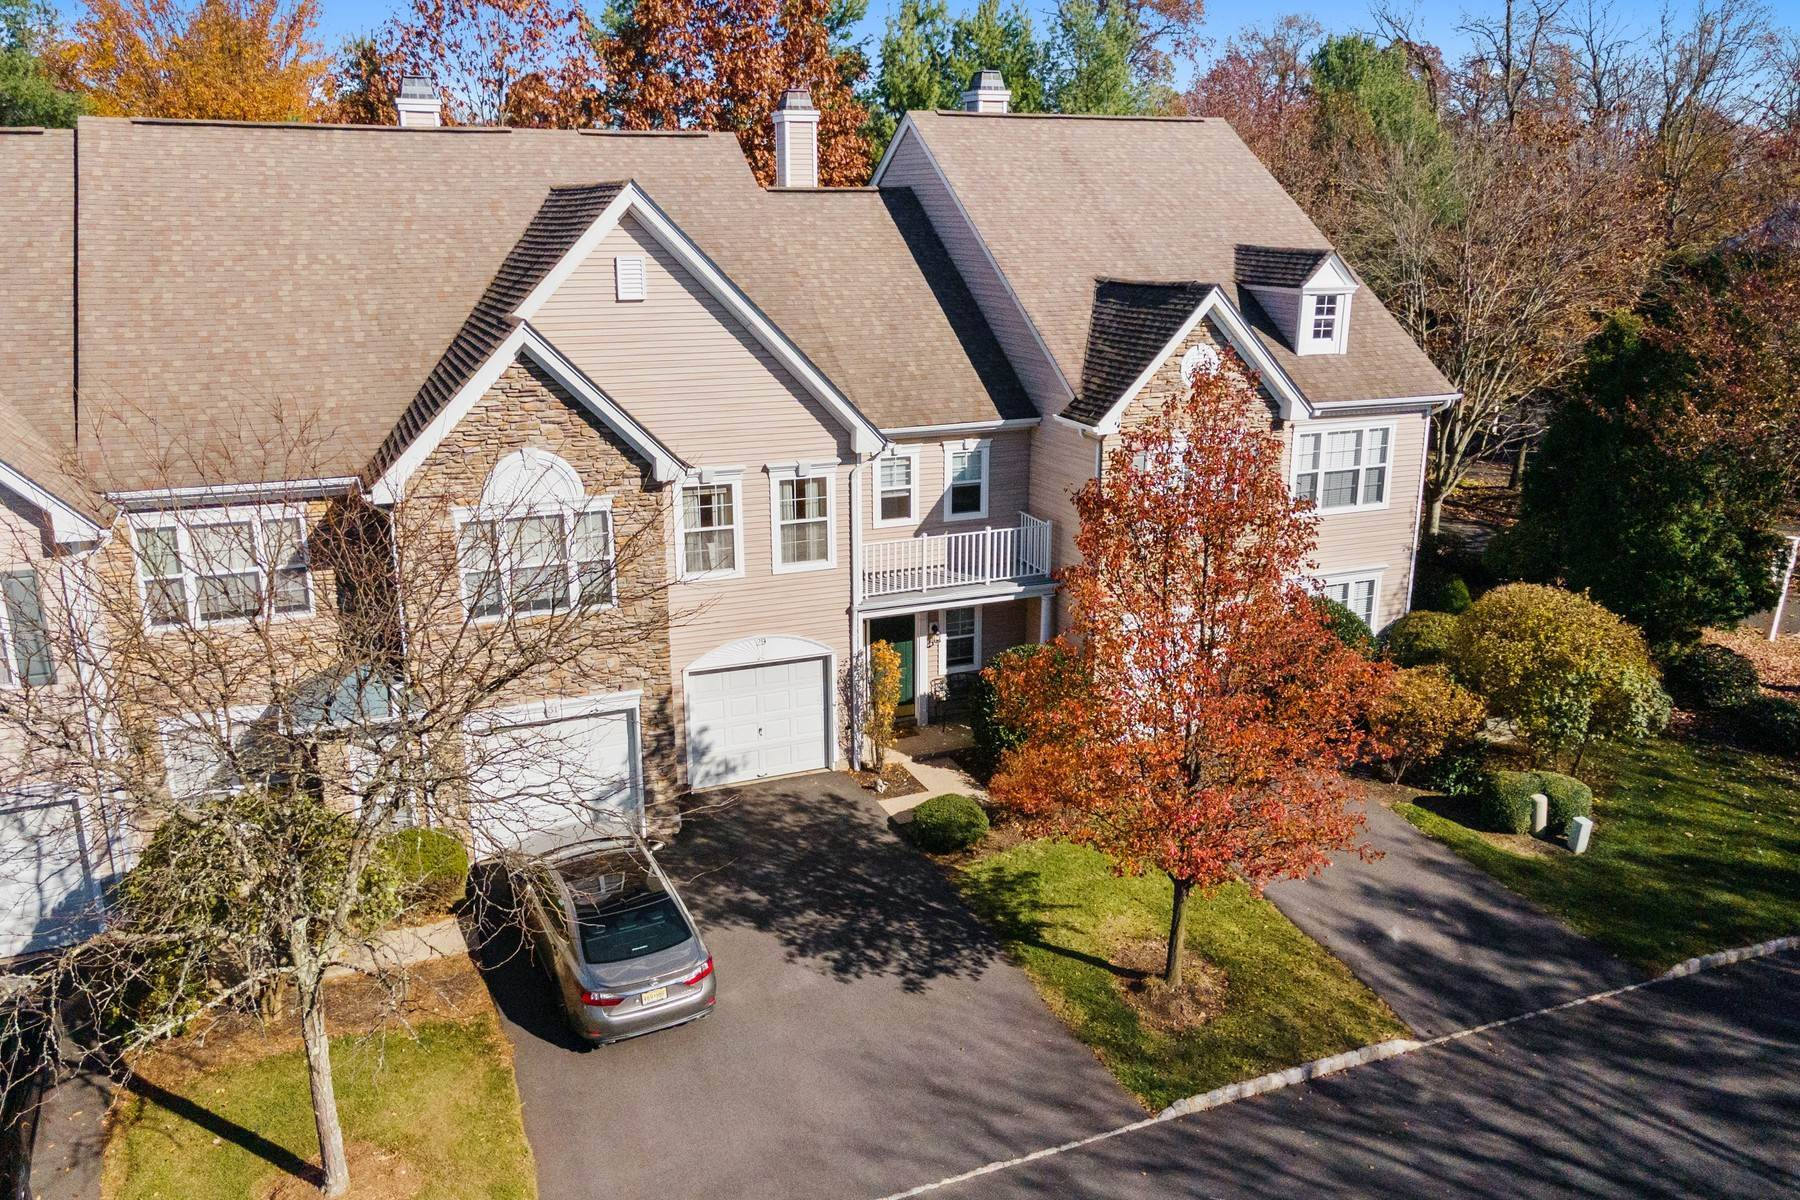 townhouses for Sale at Hamilton Ridge Townhome 29 Musket Drive Basking Ridge, New Jersey 07920 United States